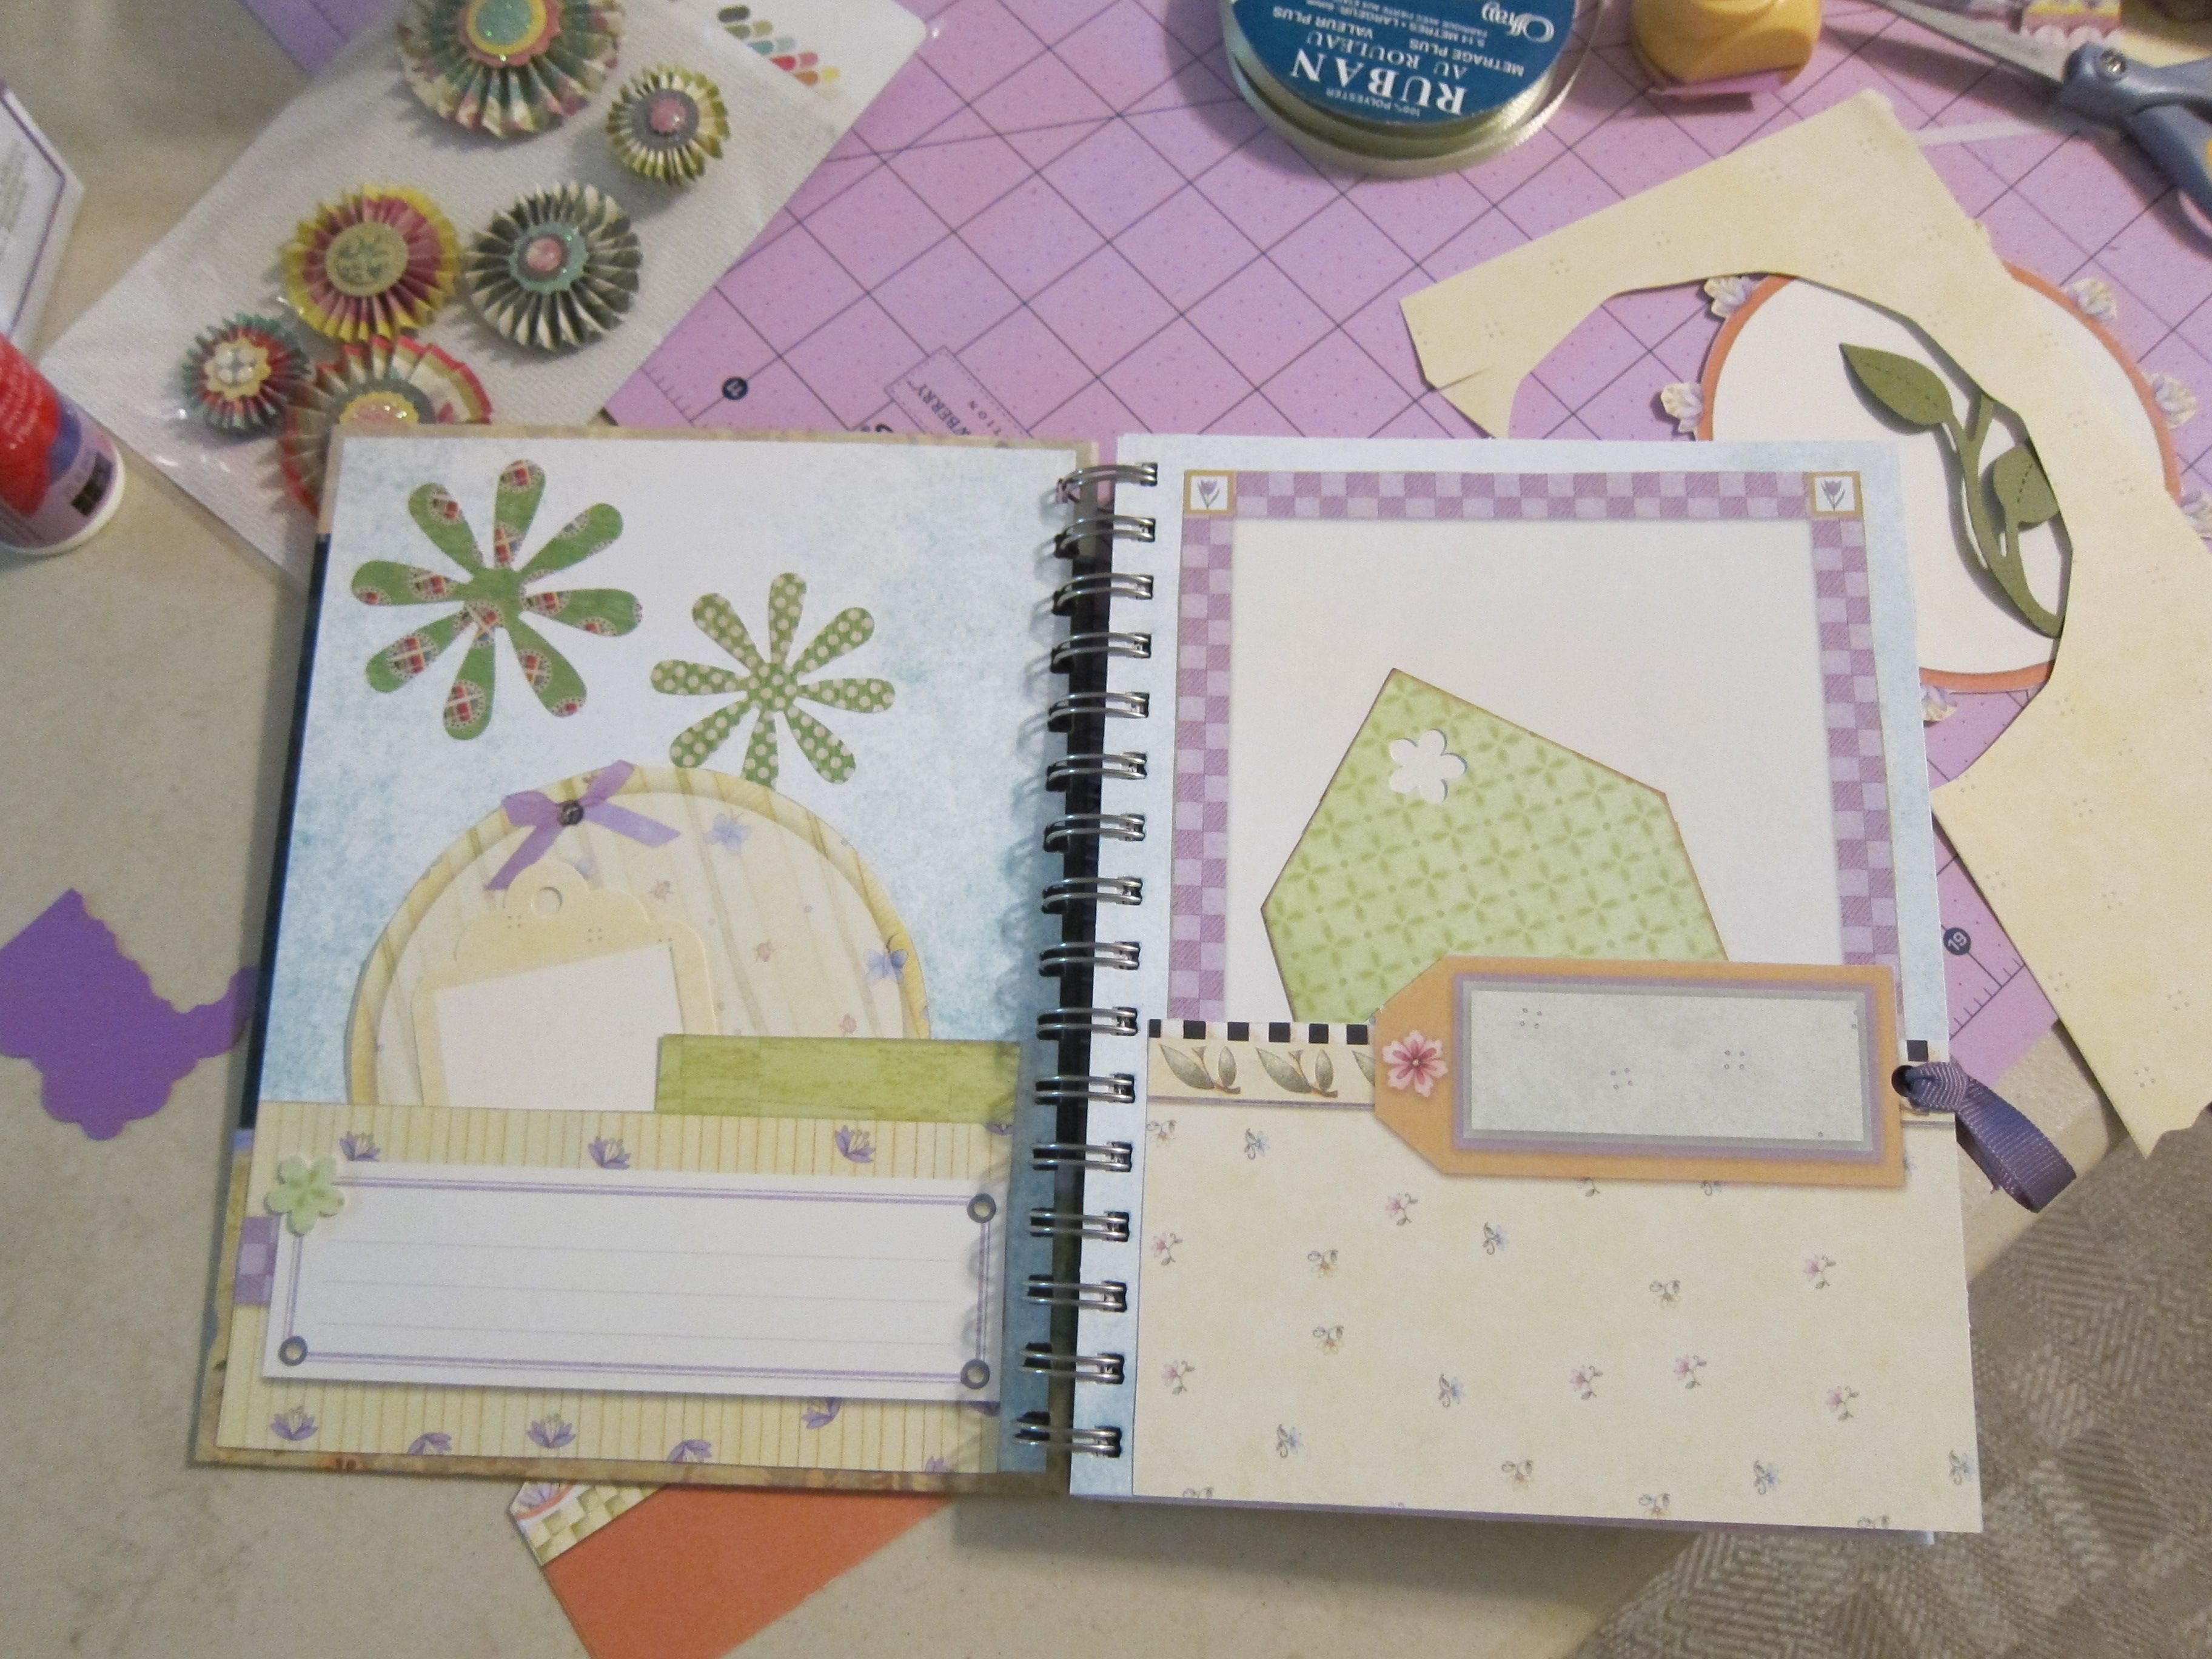 Create your own Smashbook...use your fav calendar, glue paper scraps to create pockets, embellish with ribbons, grommets, stickers...your personalized Smashbook...